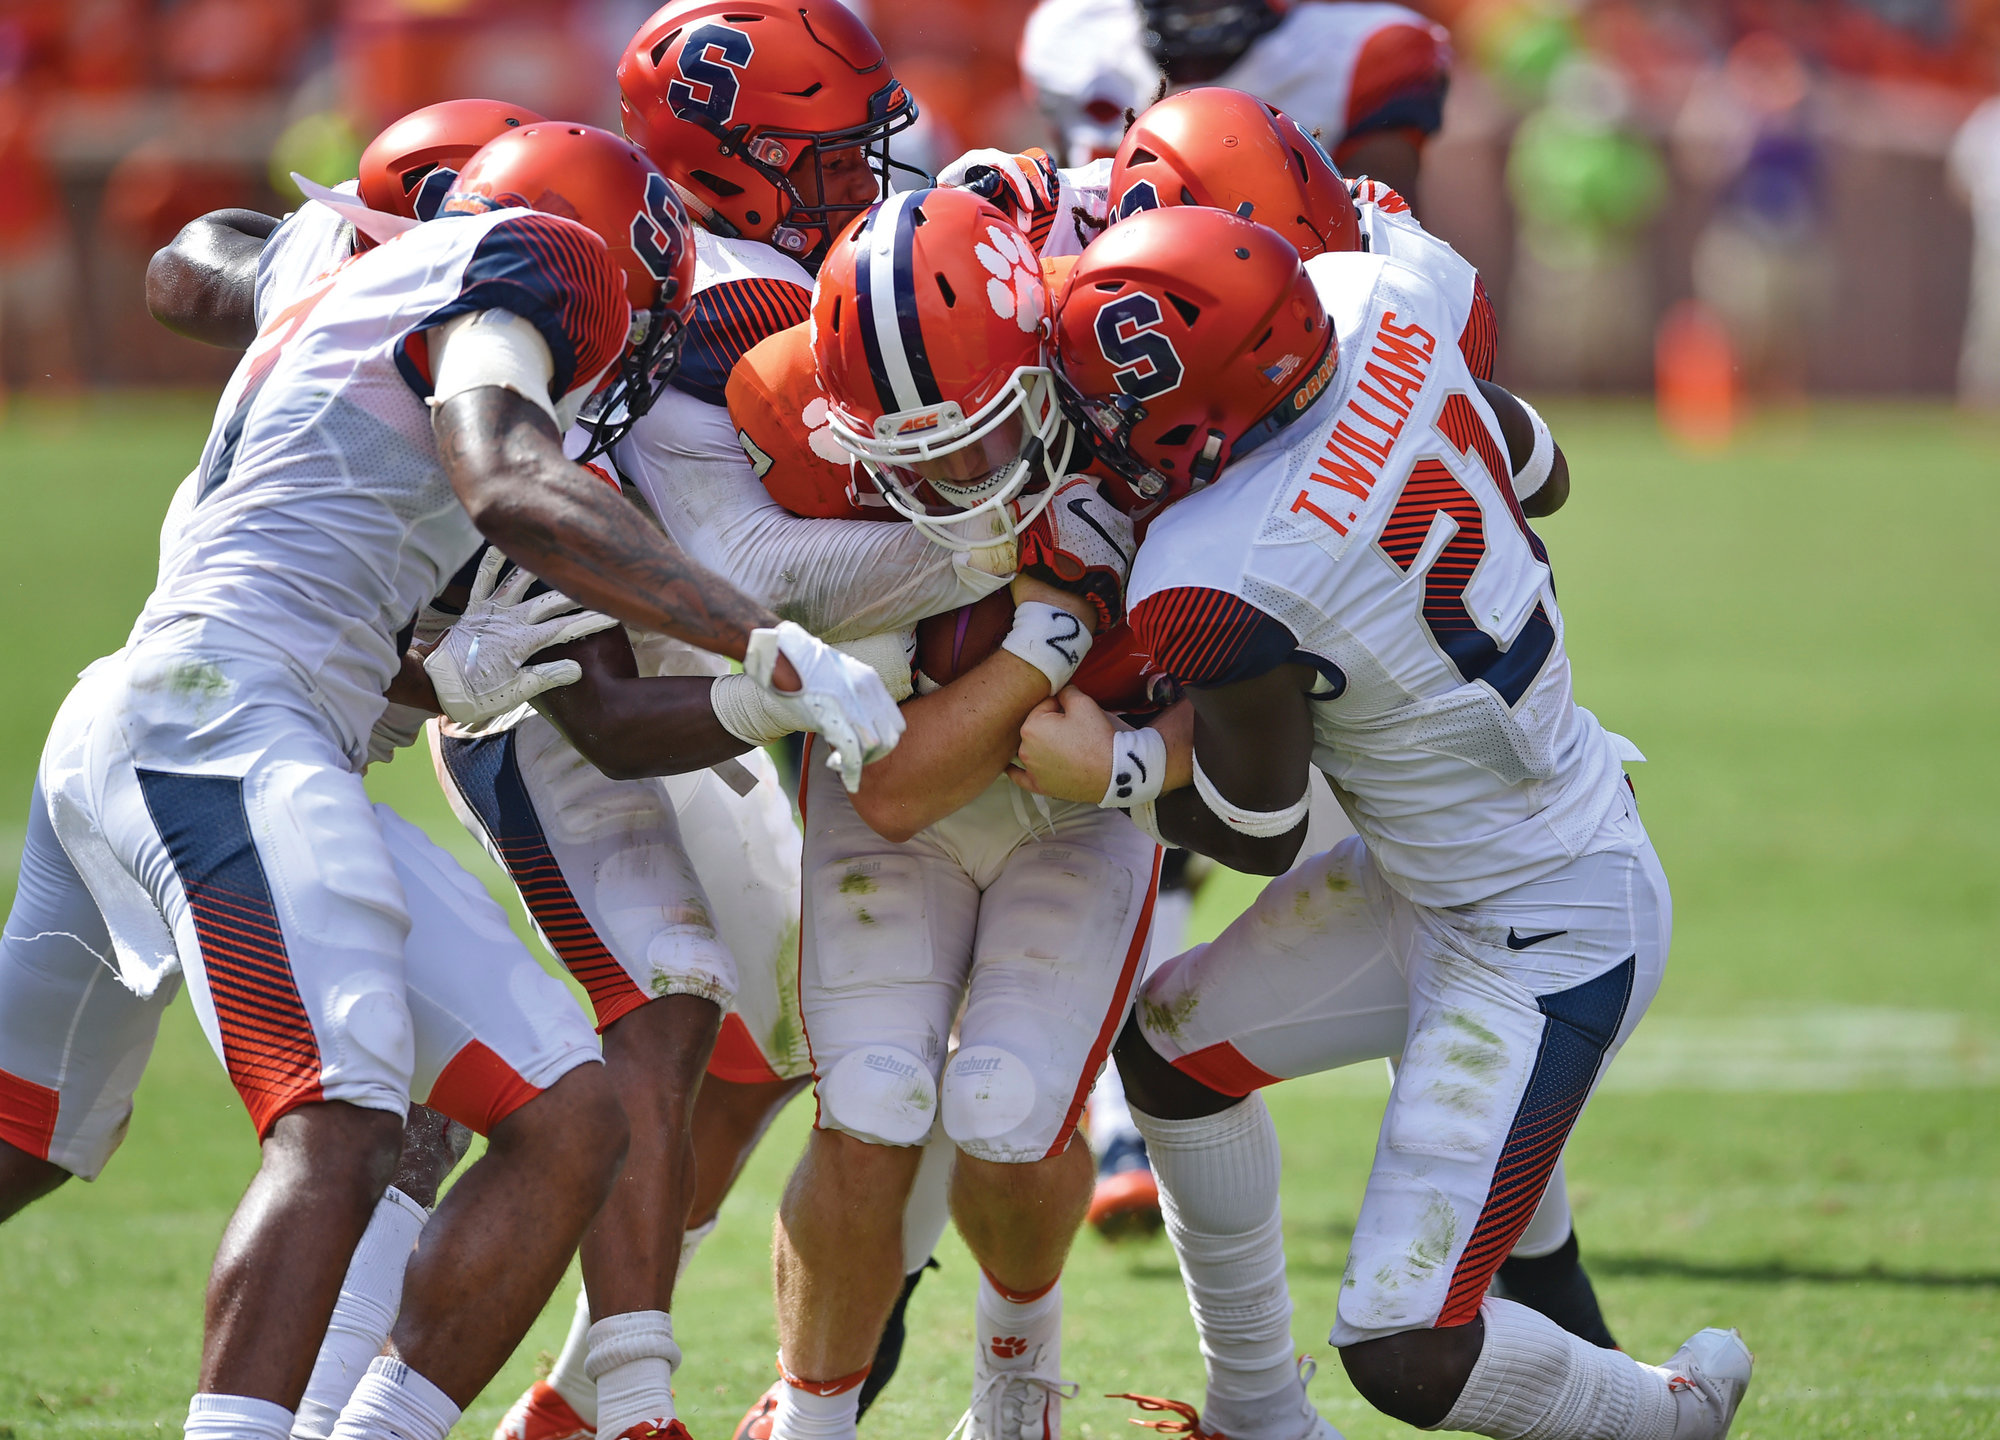 THE ASSOCIATED PRESSClemson quarterback Chase Brice (7) is tackled by Syracuse defenders after making a crucial first down on Saturday in Clemson. Clemson won 27-23.